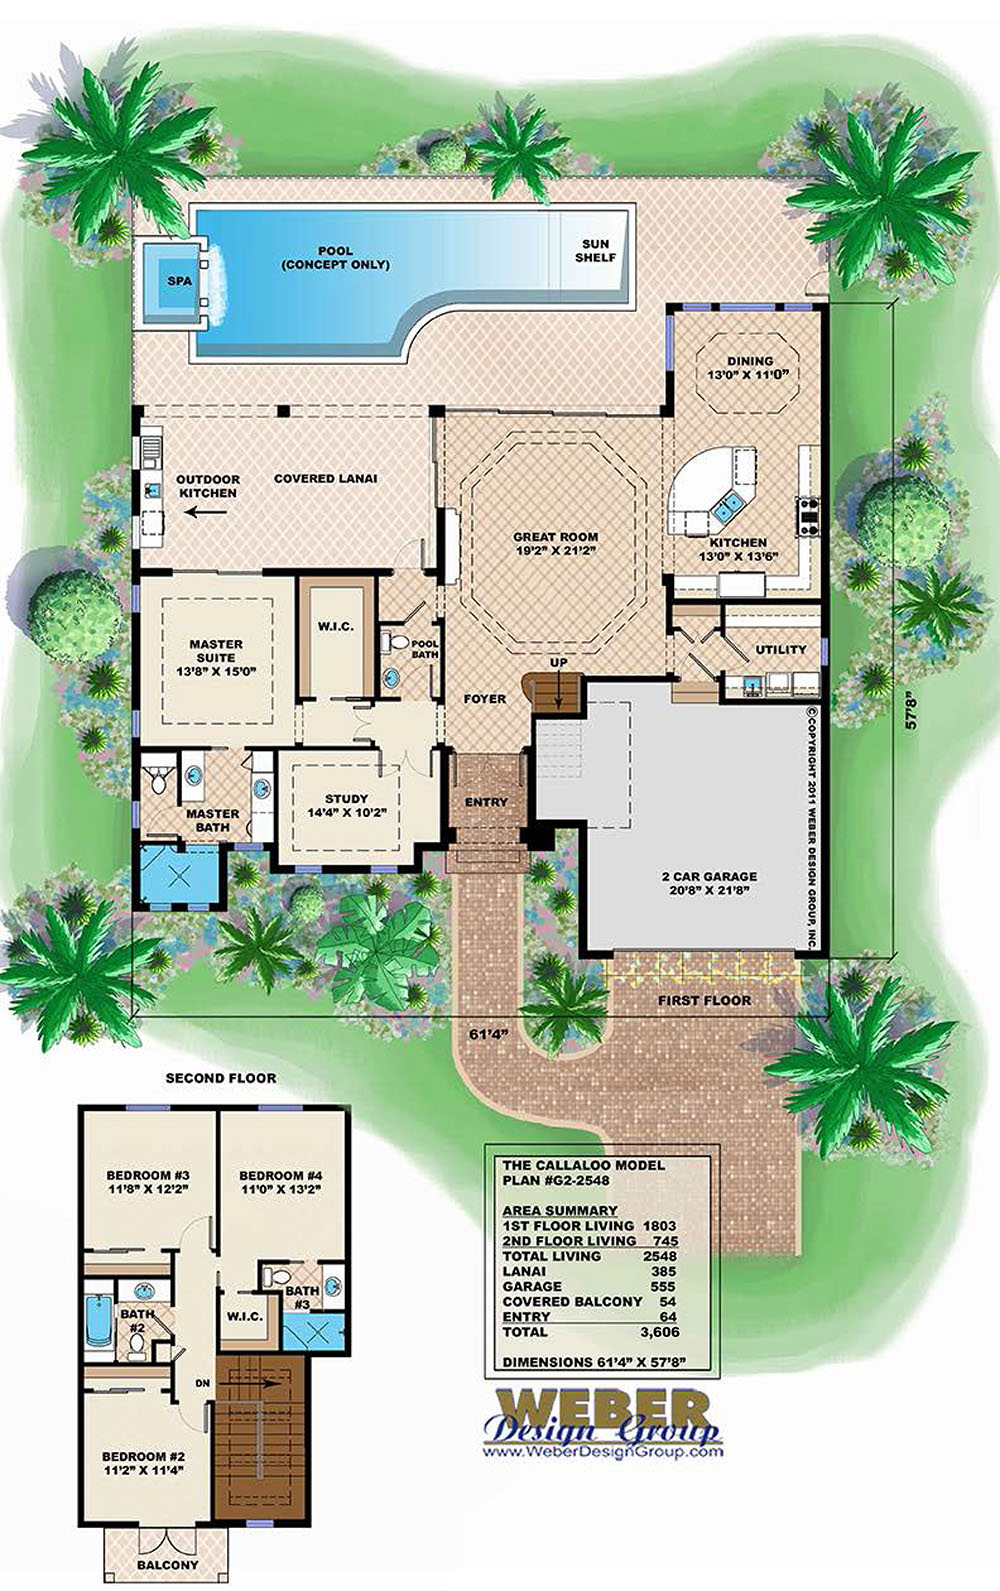 Caribbean breeze house plan weber design group for Weber house plans